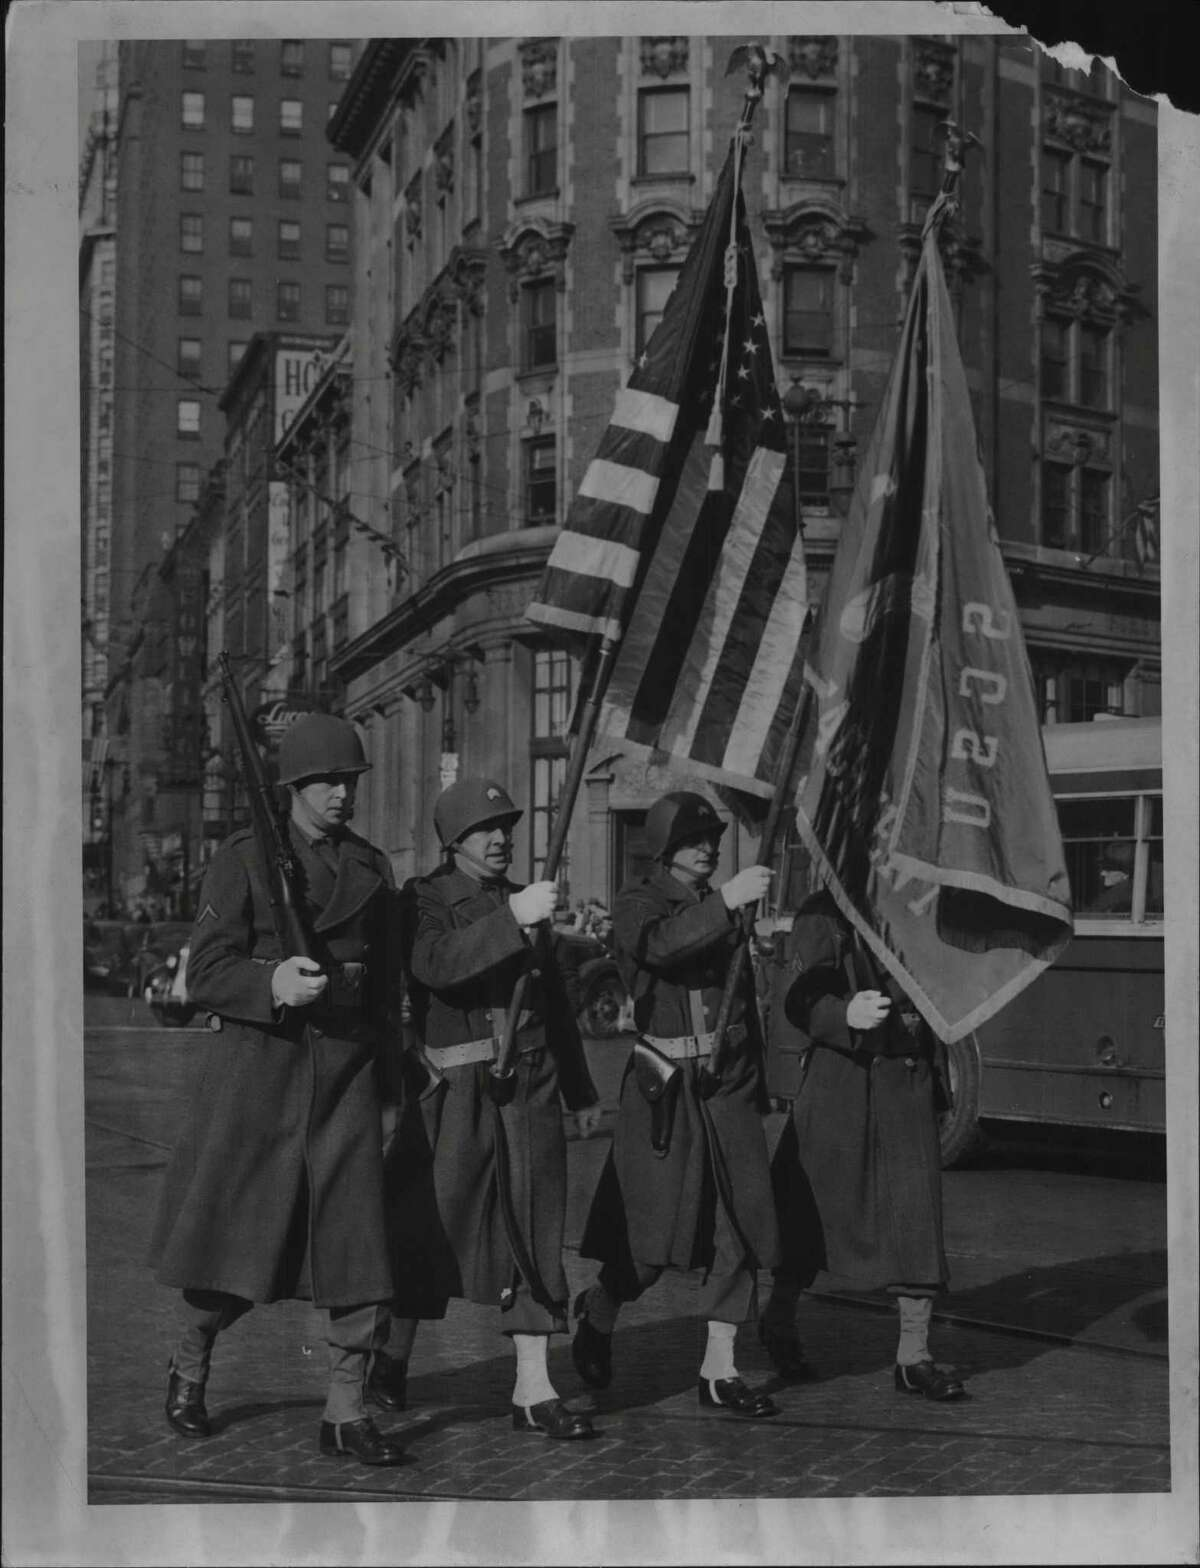 On Dec. 8, 1944, a Military Police color guard leads the way as Albanya€™s Pearl Harbor Day Parade starts out. It signaled the opening of an American Legion War Bond show in the Ten Eyck Hotel in Albany. The Japanese attack on the U.S. Naval Base in Hawaii was 78 years ago today. (Times Union Archive)